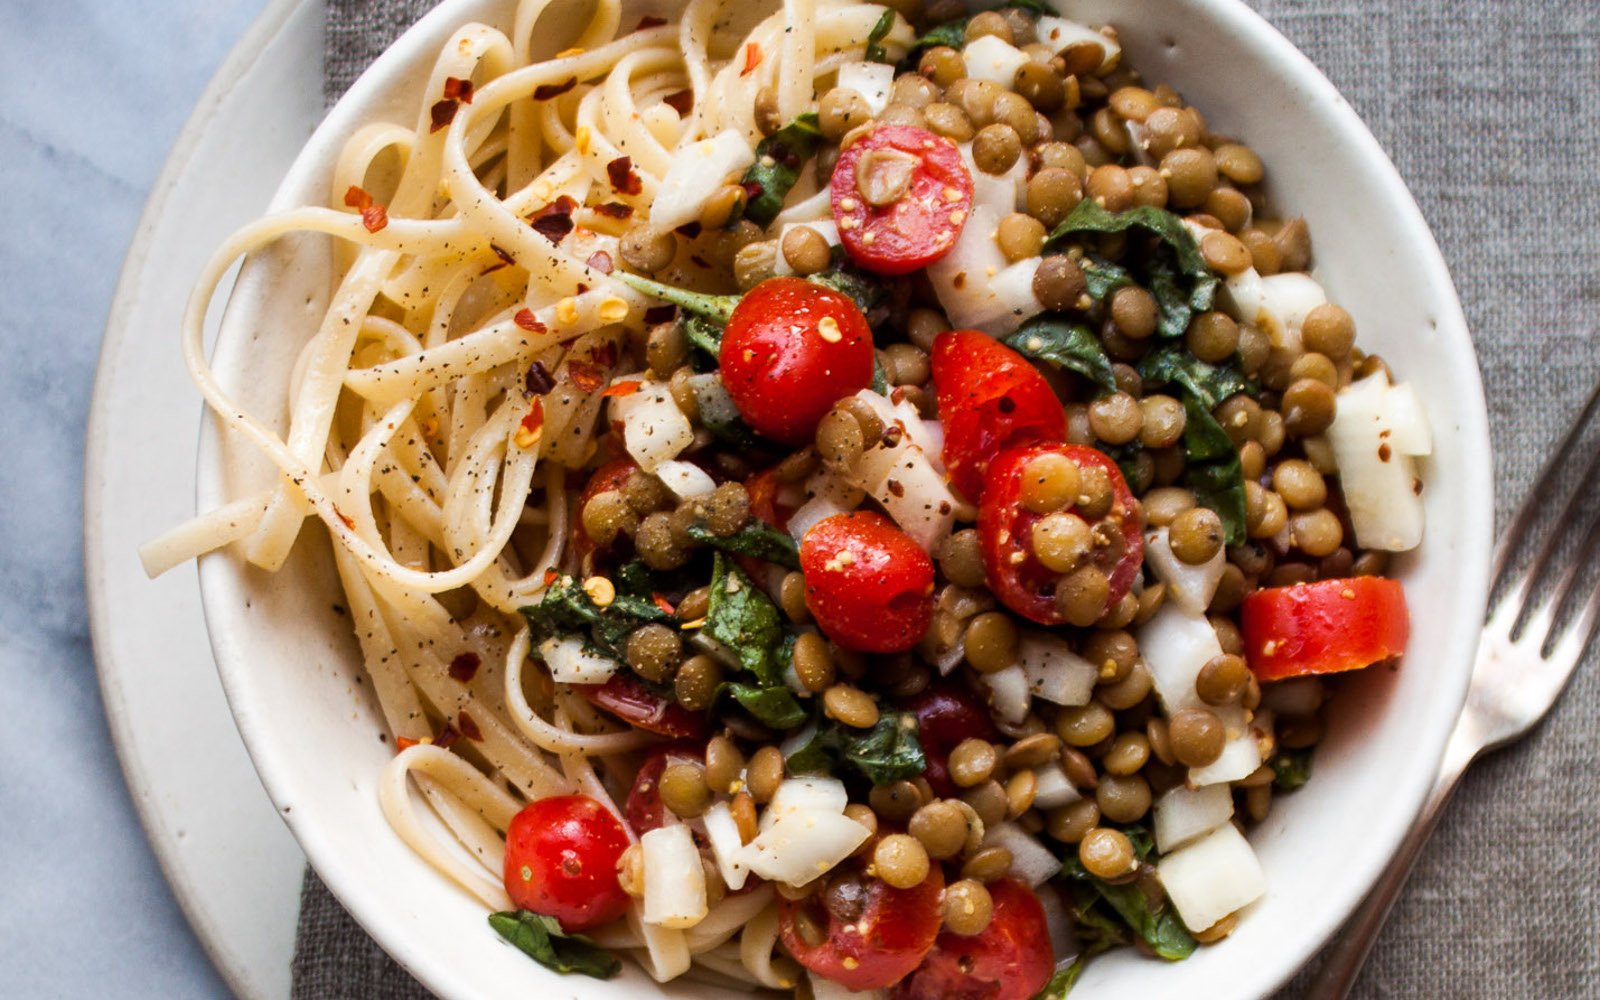 tomato and lentils over pasta